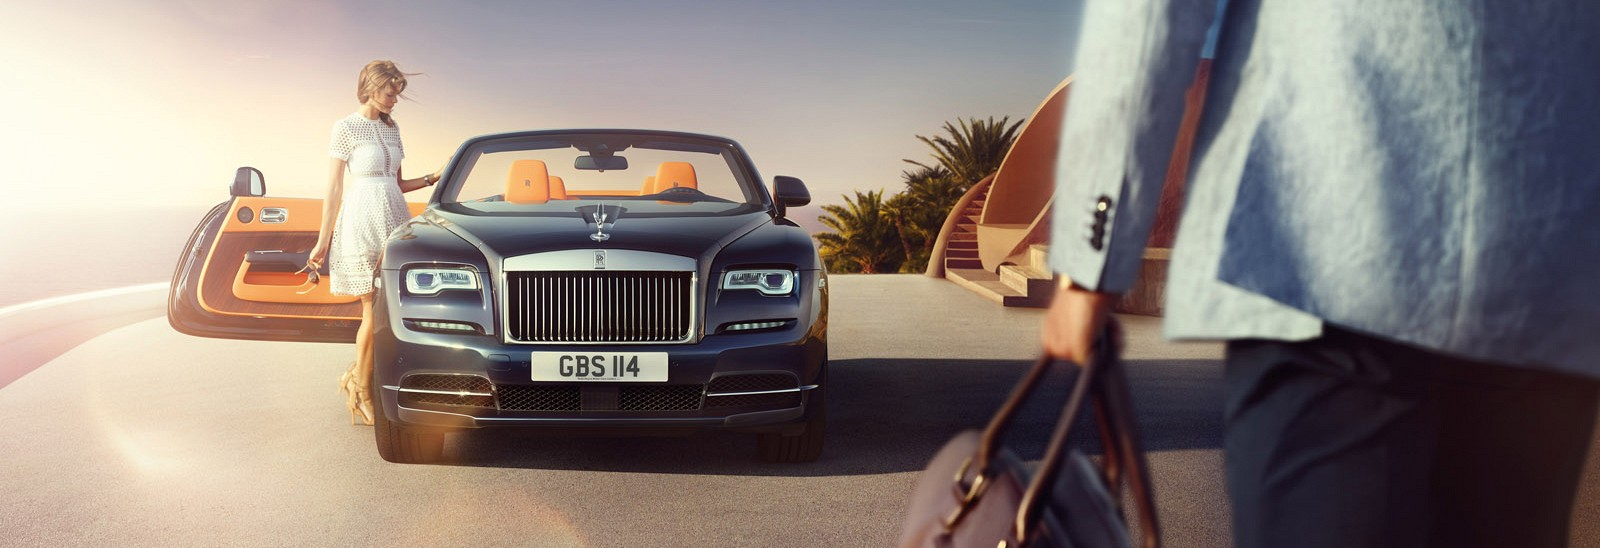 On the road: The Rolls-Royce Dawn review